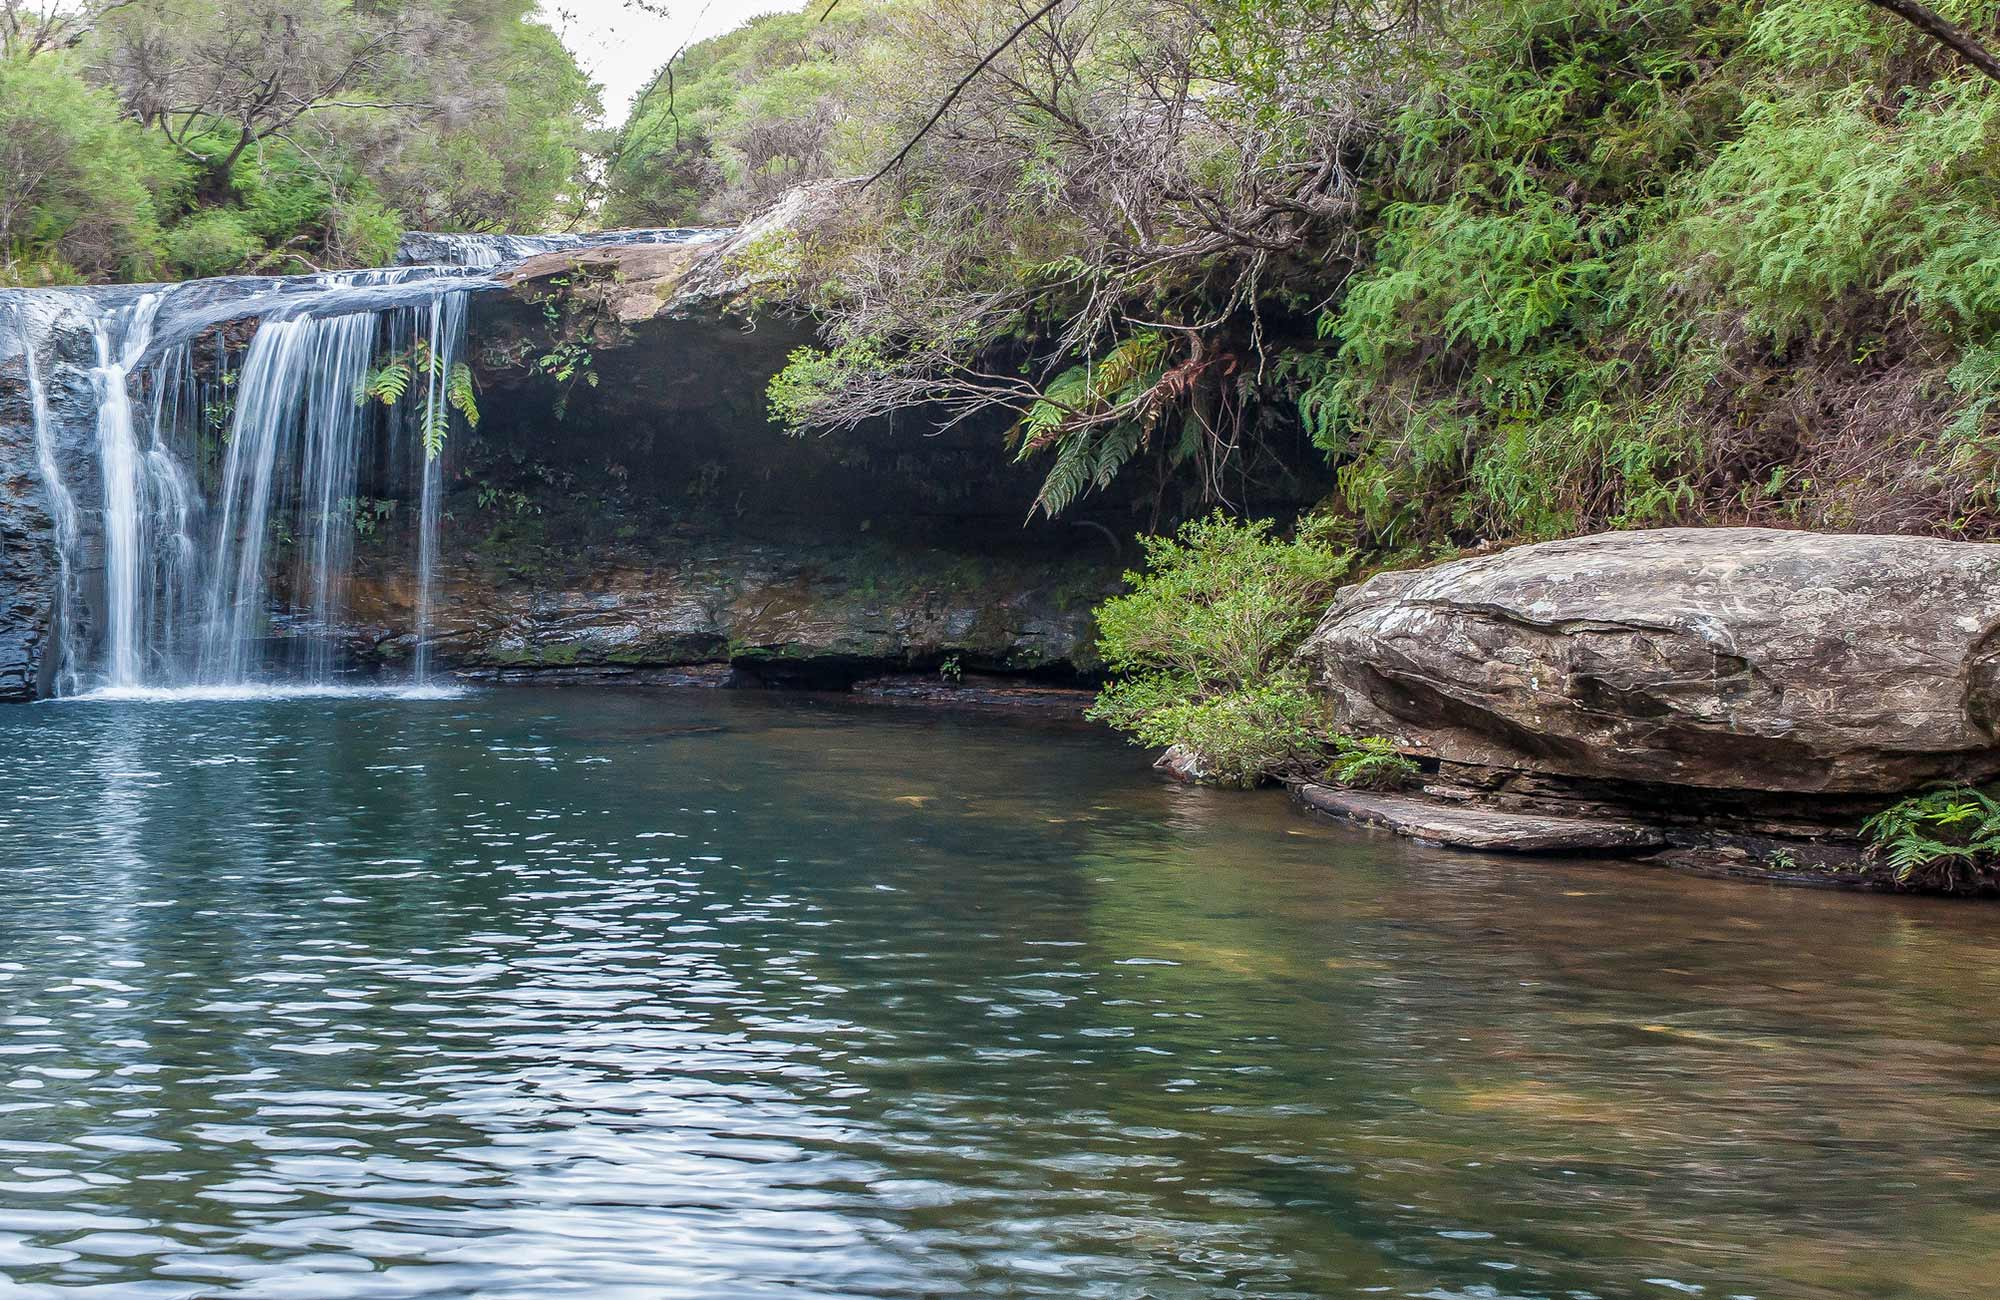 Nellies Glen waterfall in Budderoo National Park. Photo credit: Michael Van Ewijk © DPIE